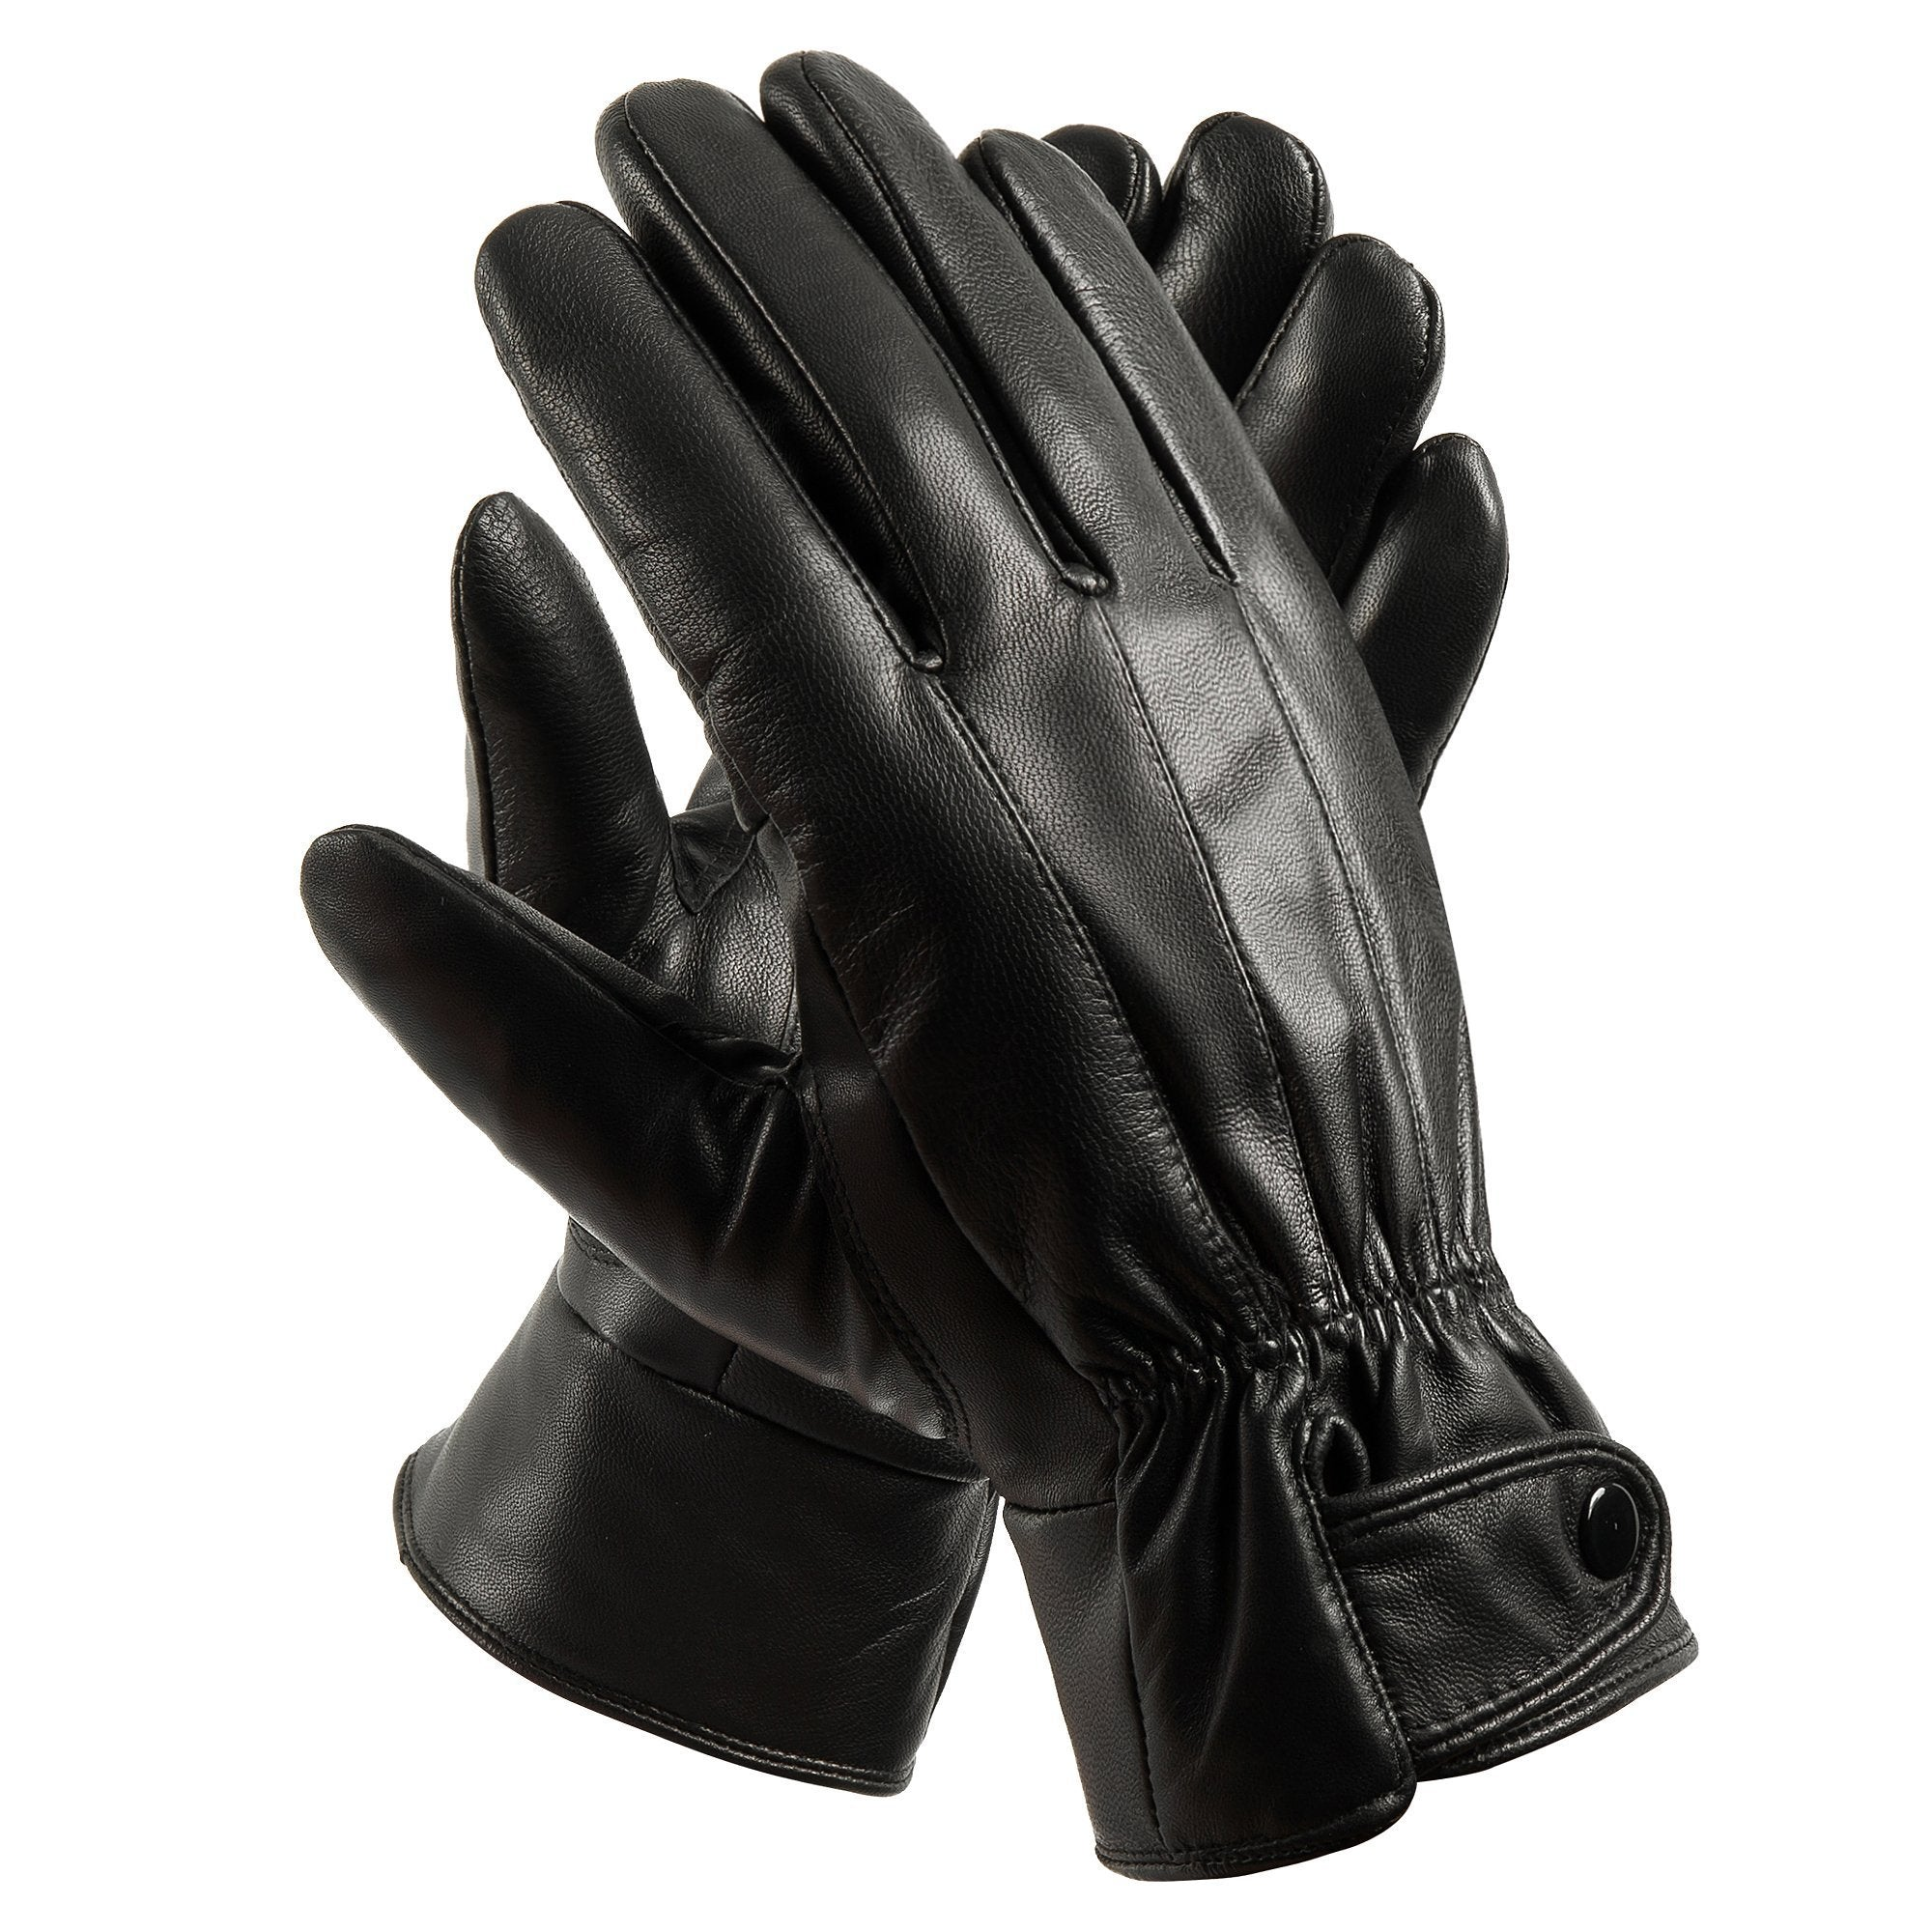 Anccion Men's Genuine Leather Warm Lined Driving Gloves, Motorcycle Gloves Black Large